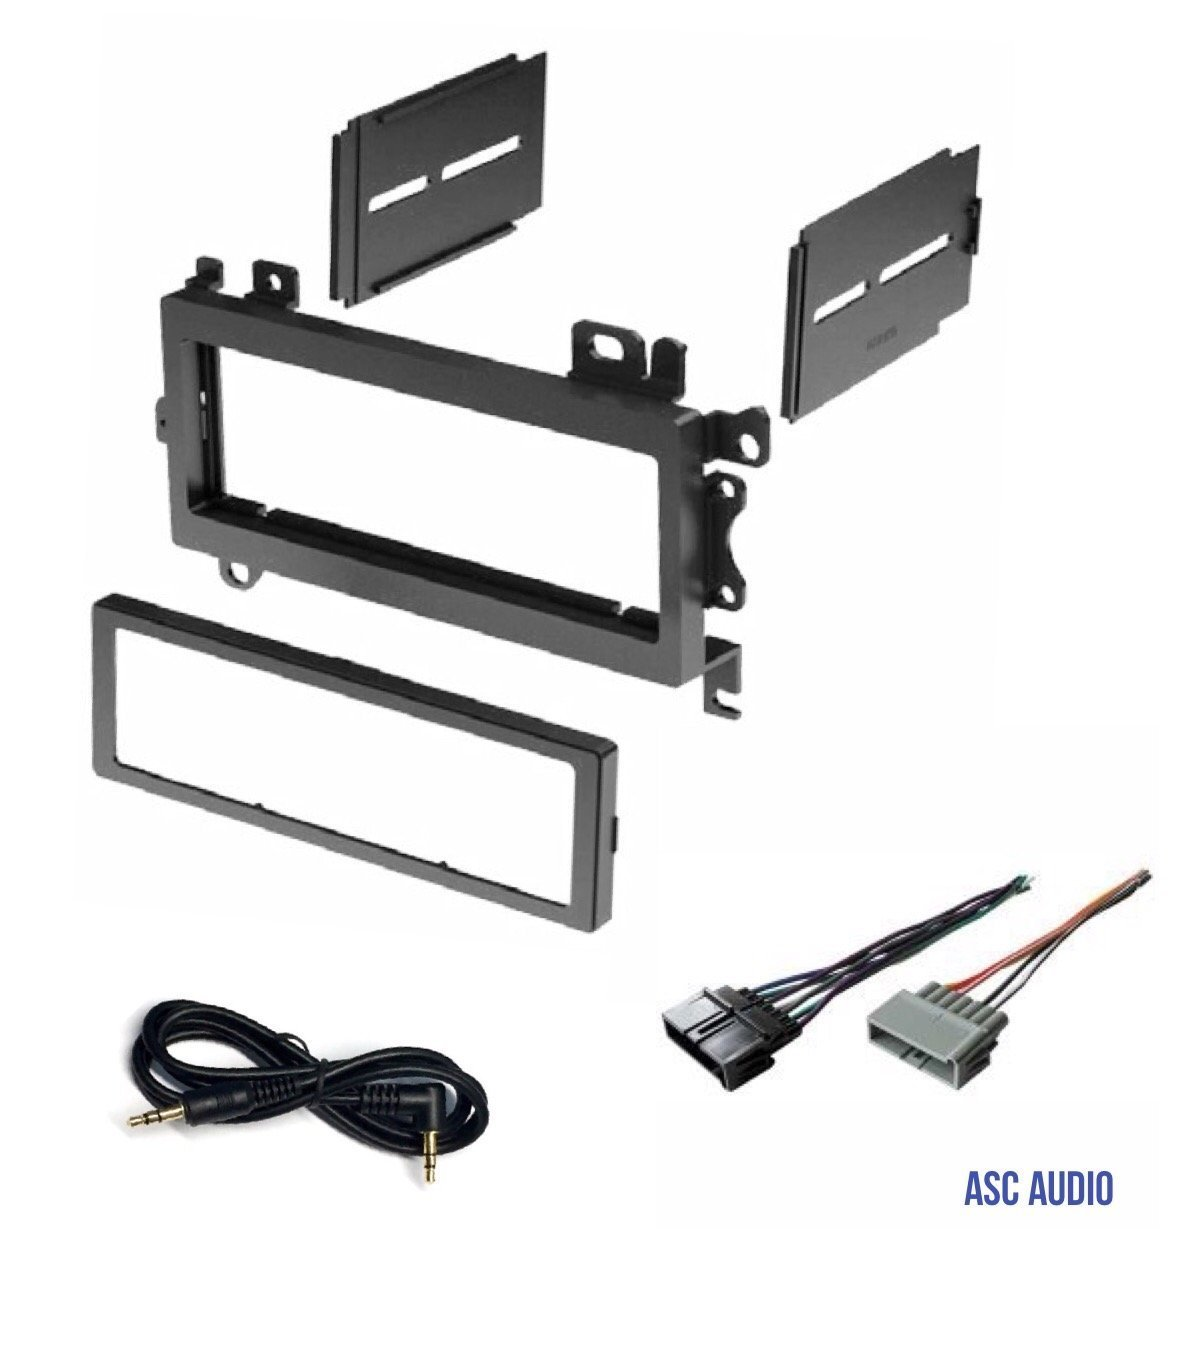 ASC Car Stereo Dash Install Mount Kit and Wire Harness Combo to install a Single Din Aftermarket Radio for some 1984-2002 Chrysler Dodge Jeep Plymouth Vehicles